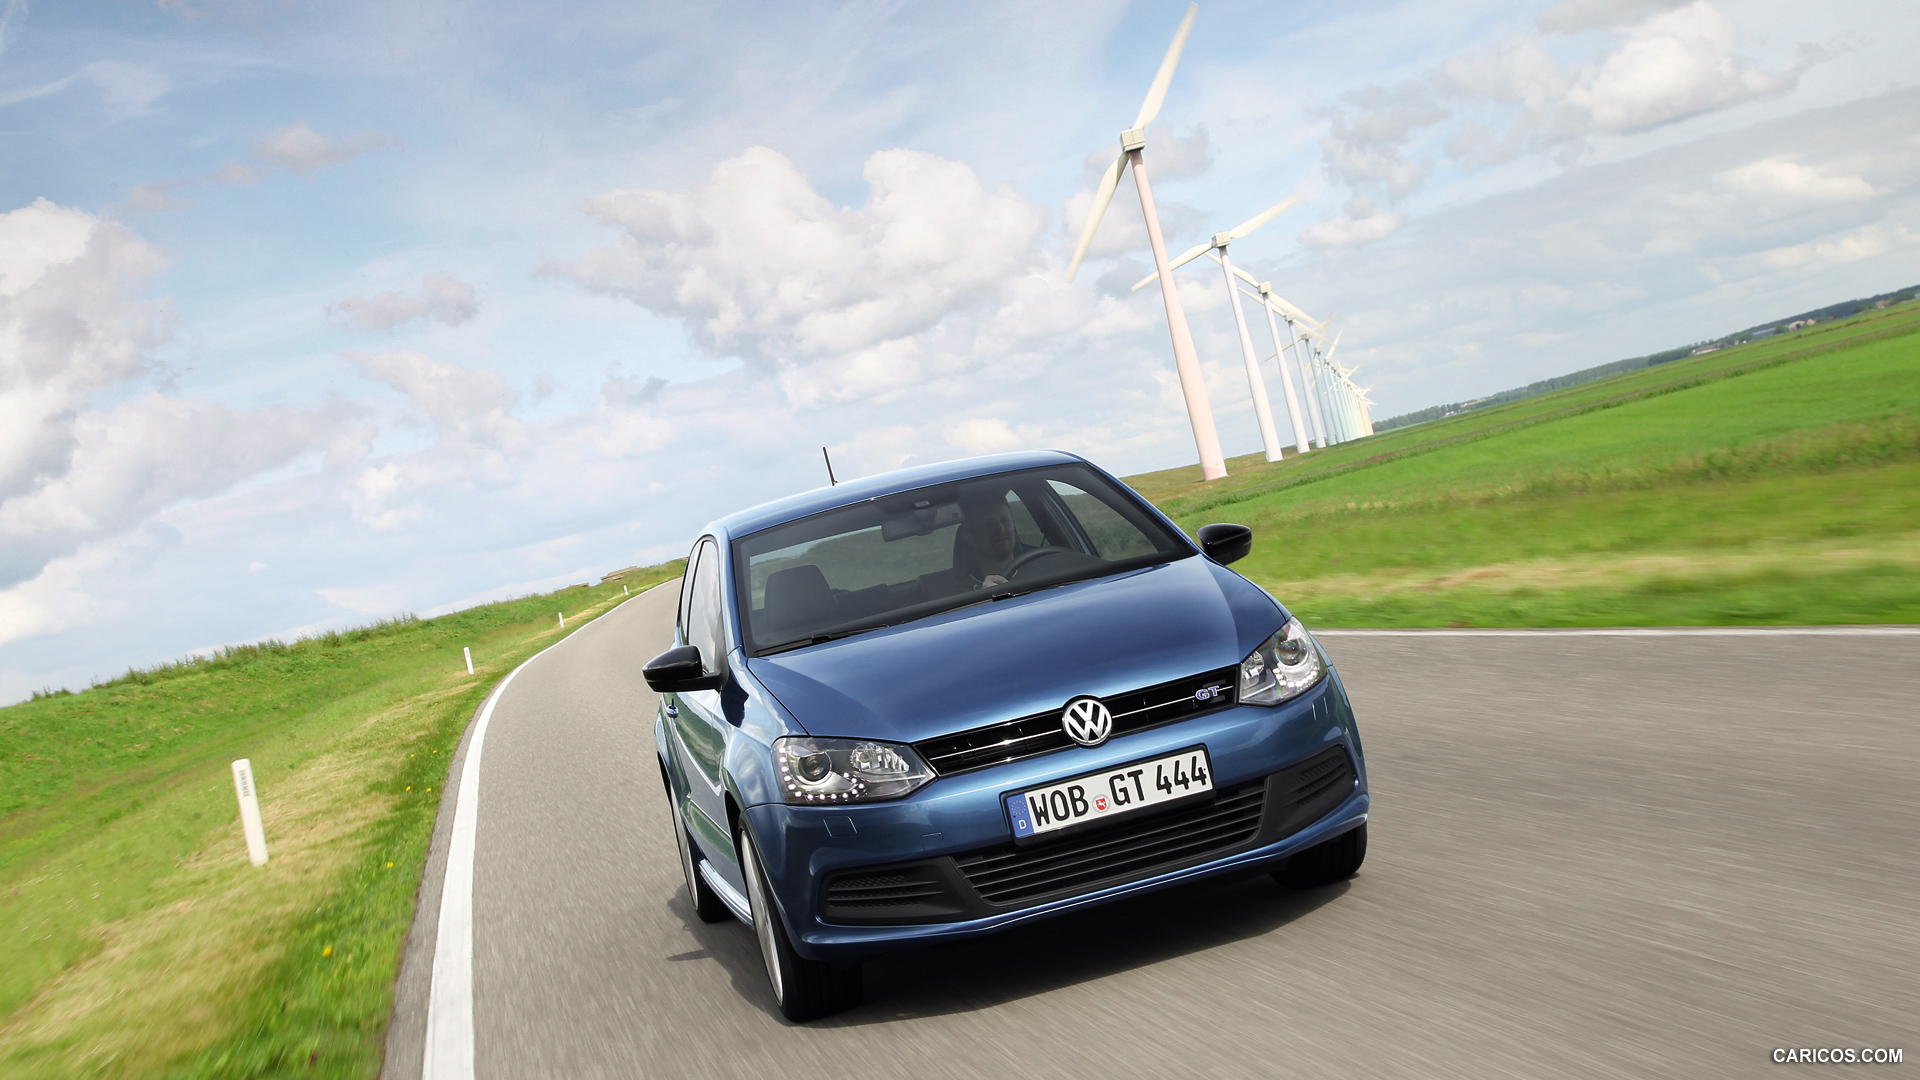 Volkswagen Polo Blue GT photo 135039